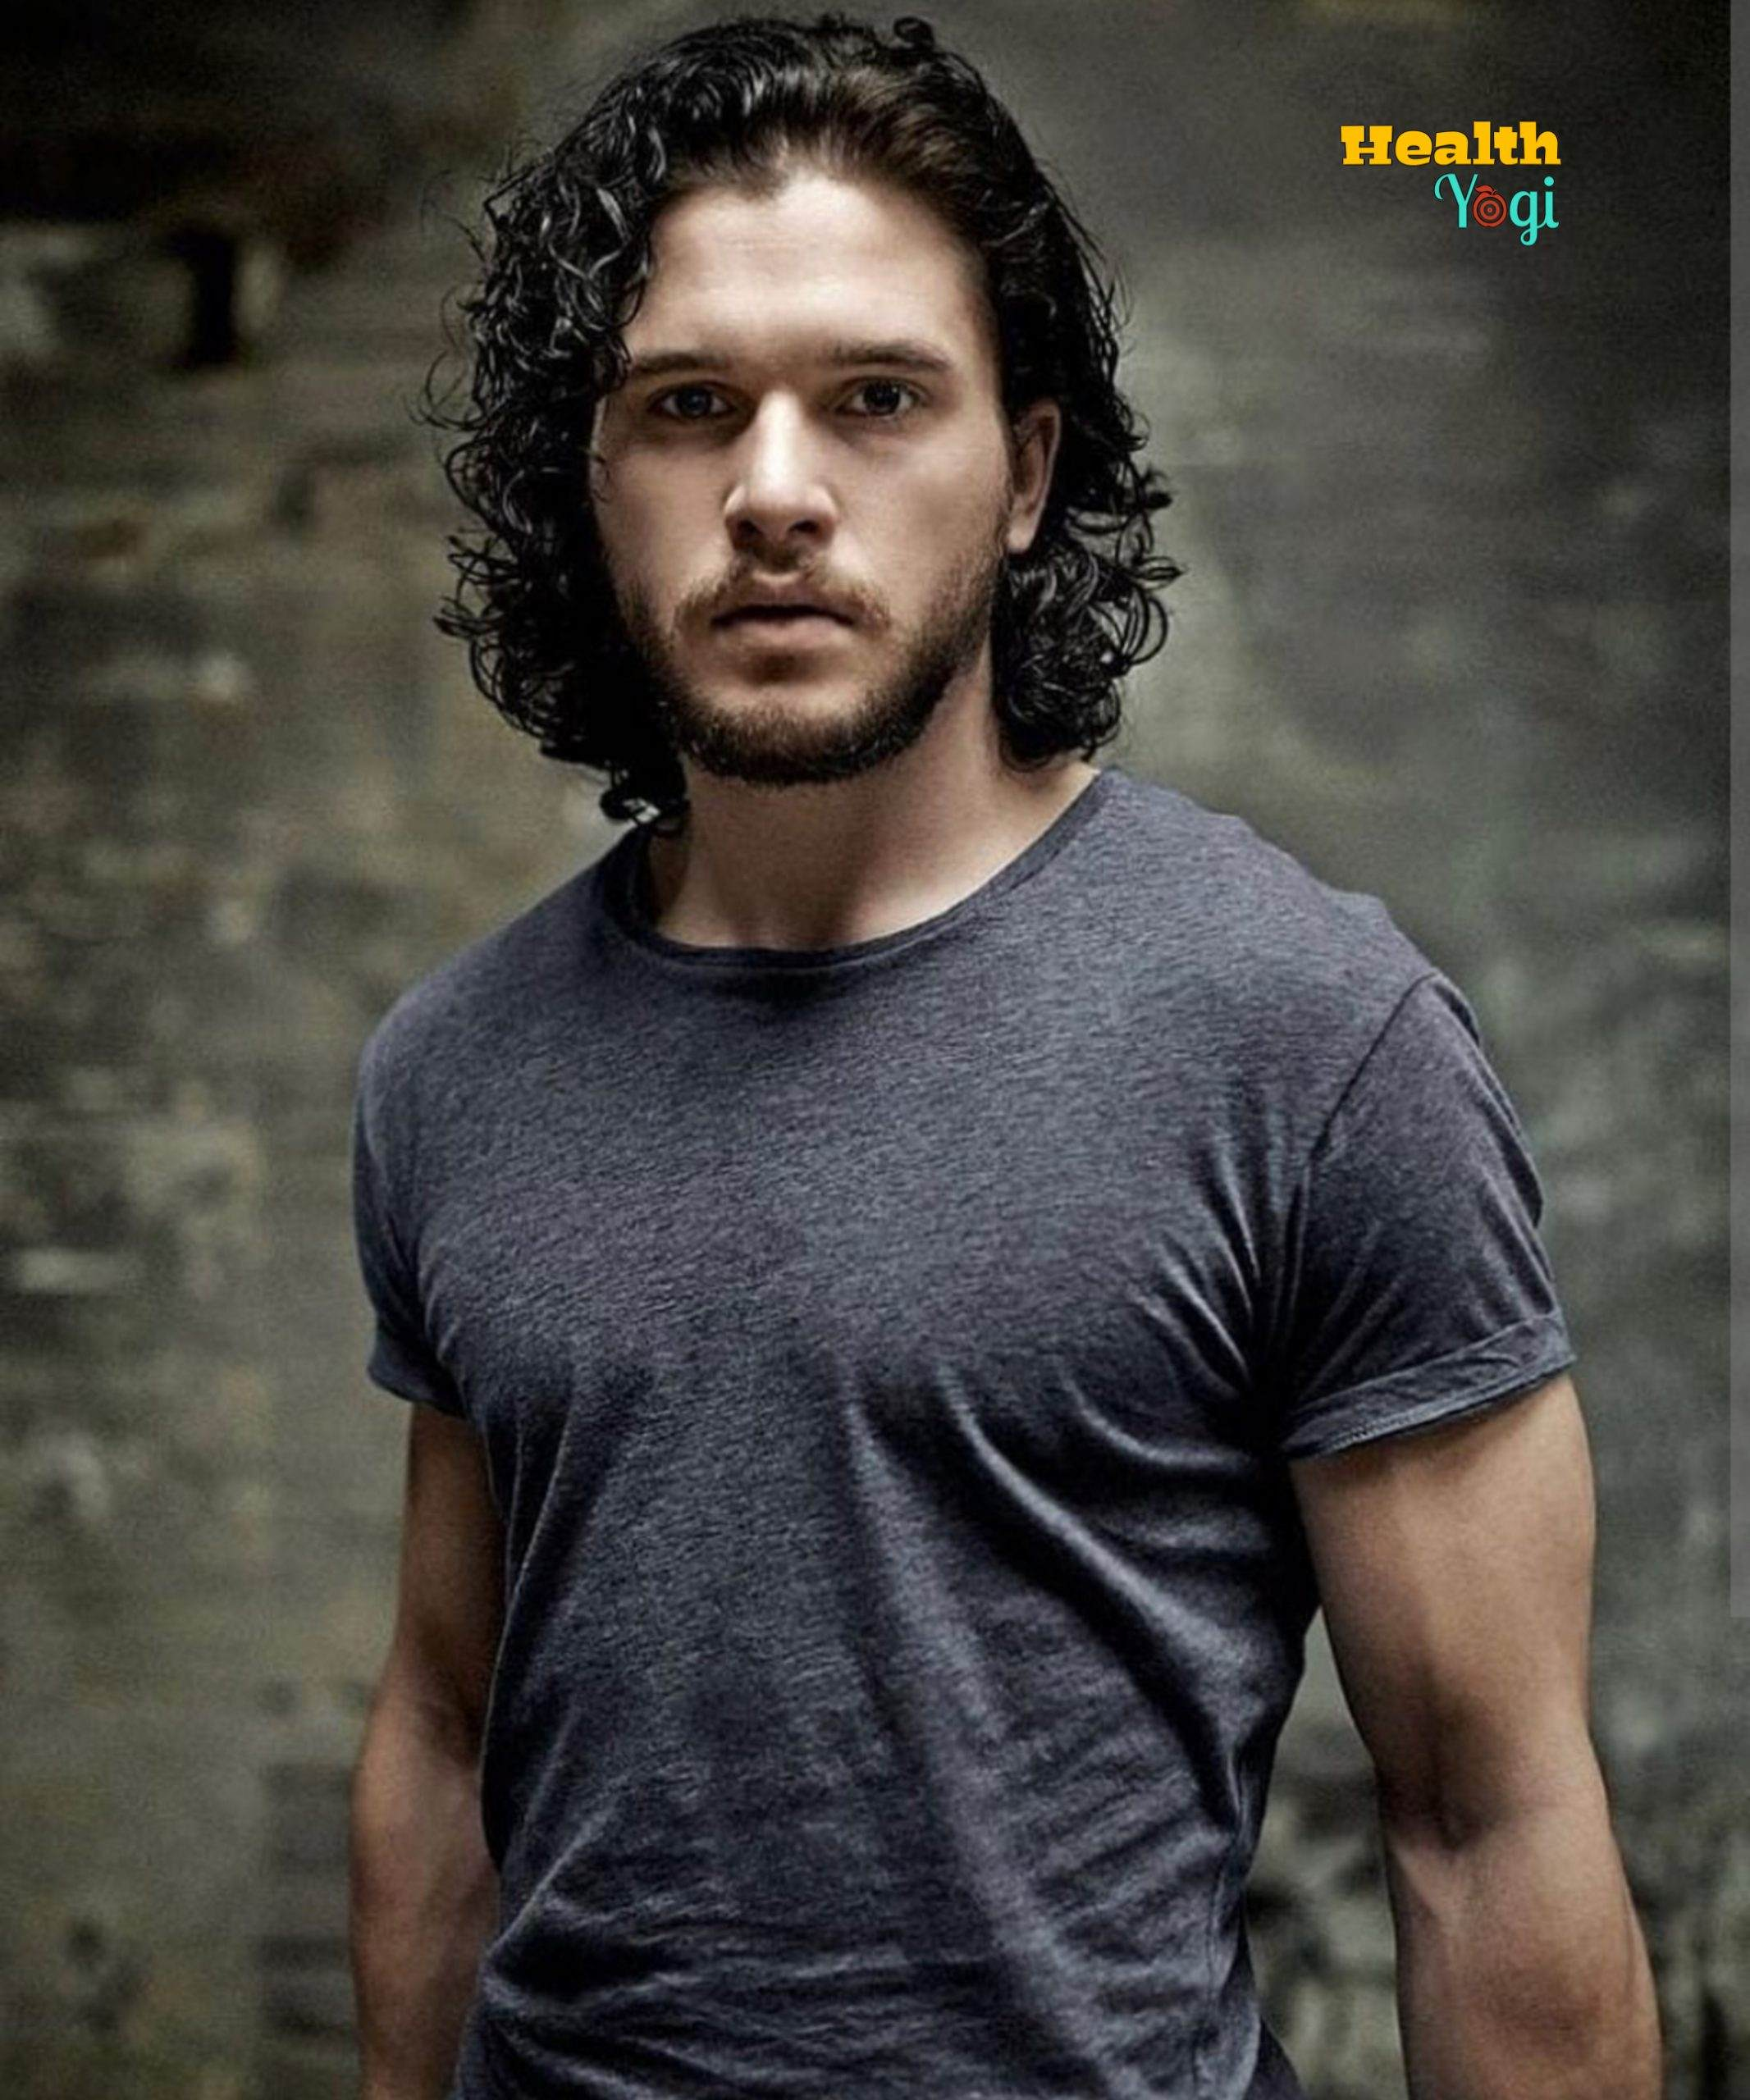 Kit Harington Workout Routine and Diet Plan